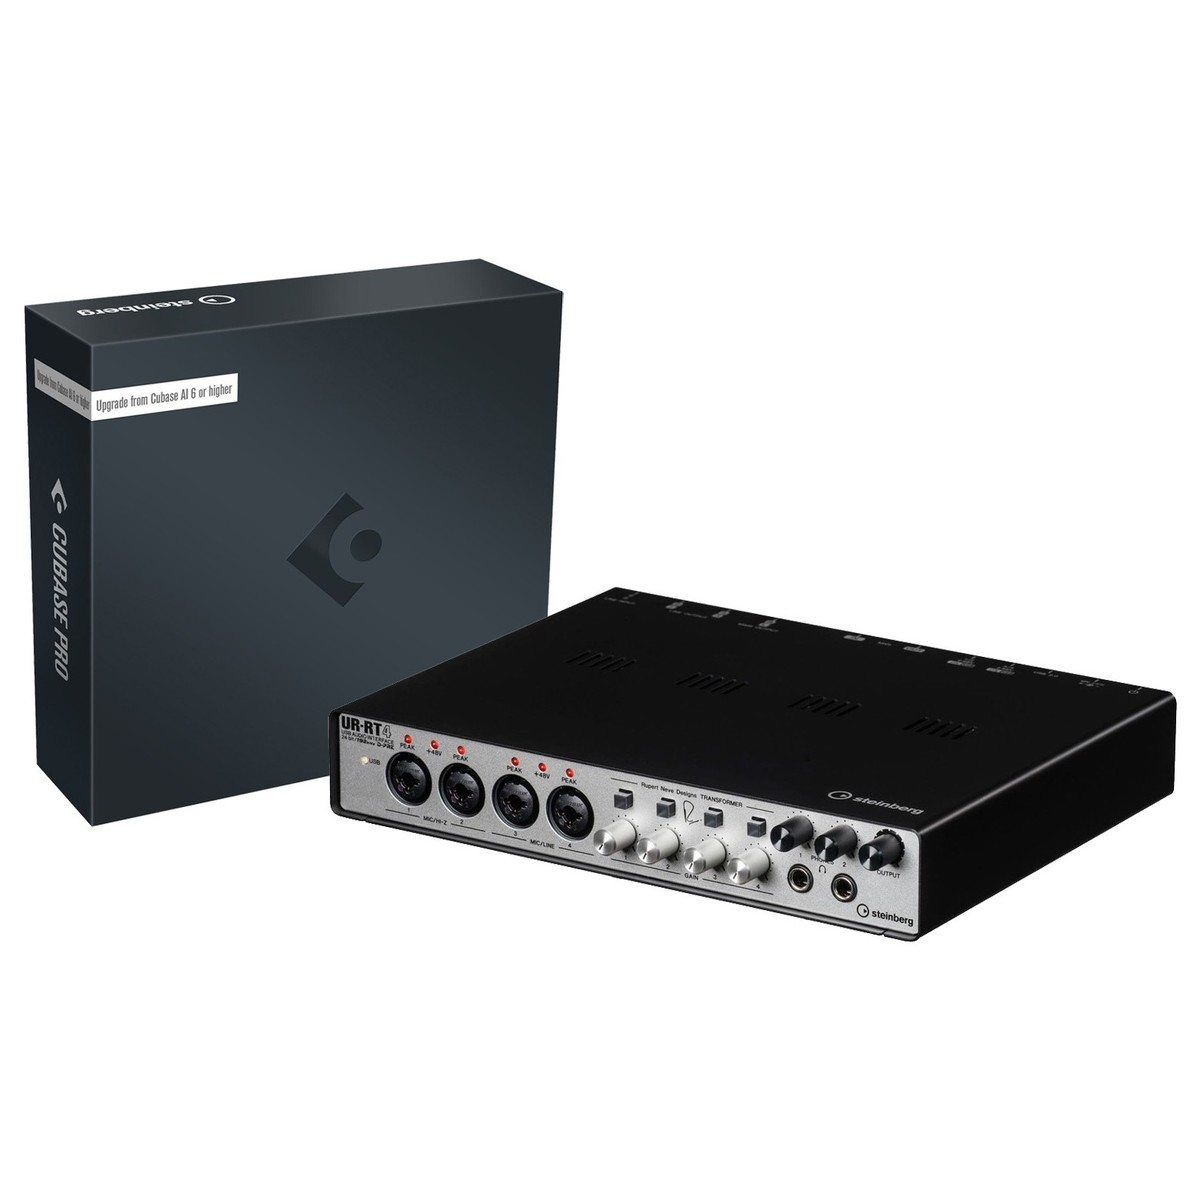 Steinberg UR-RT4 USB Audio Interface with Upgrade to Cubase Pro 10